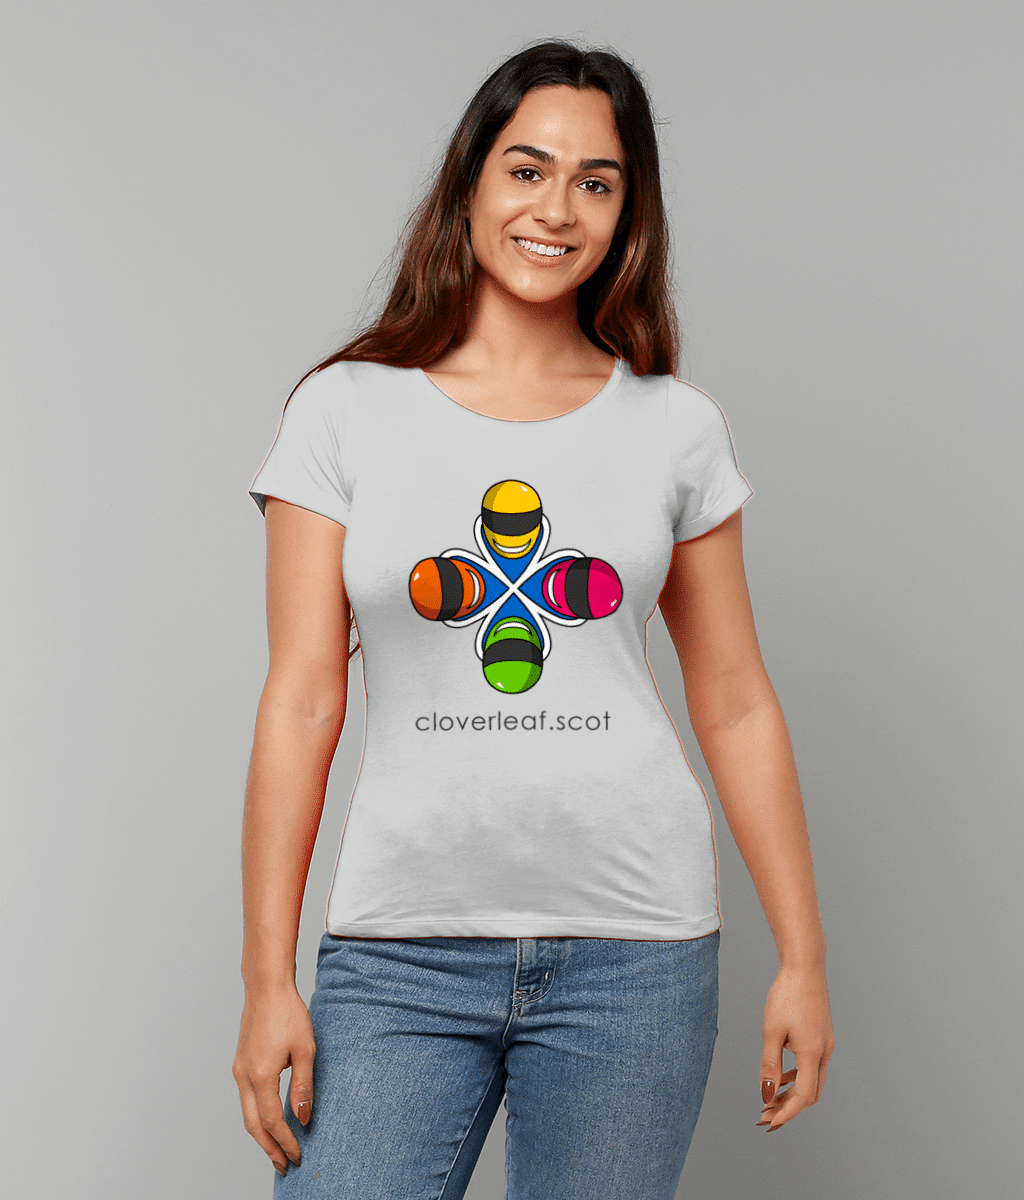 Cloverleaf Logo Women's Fitted T-Shirt